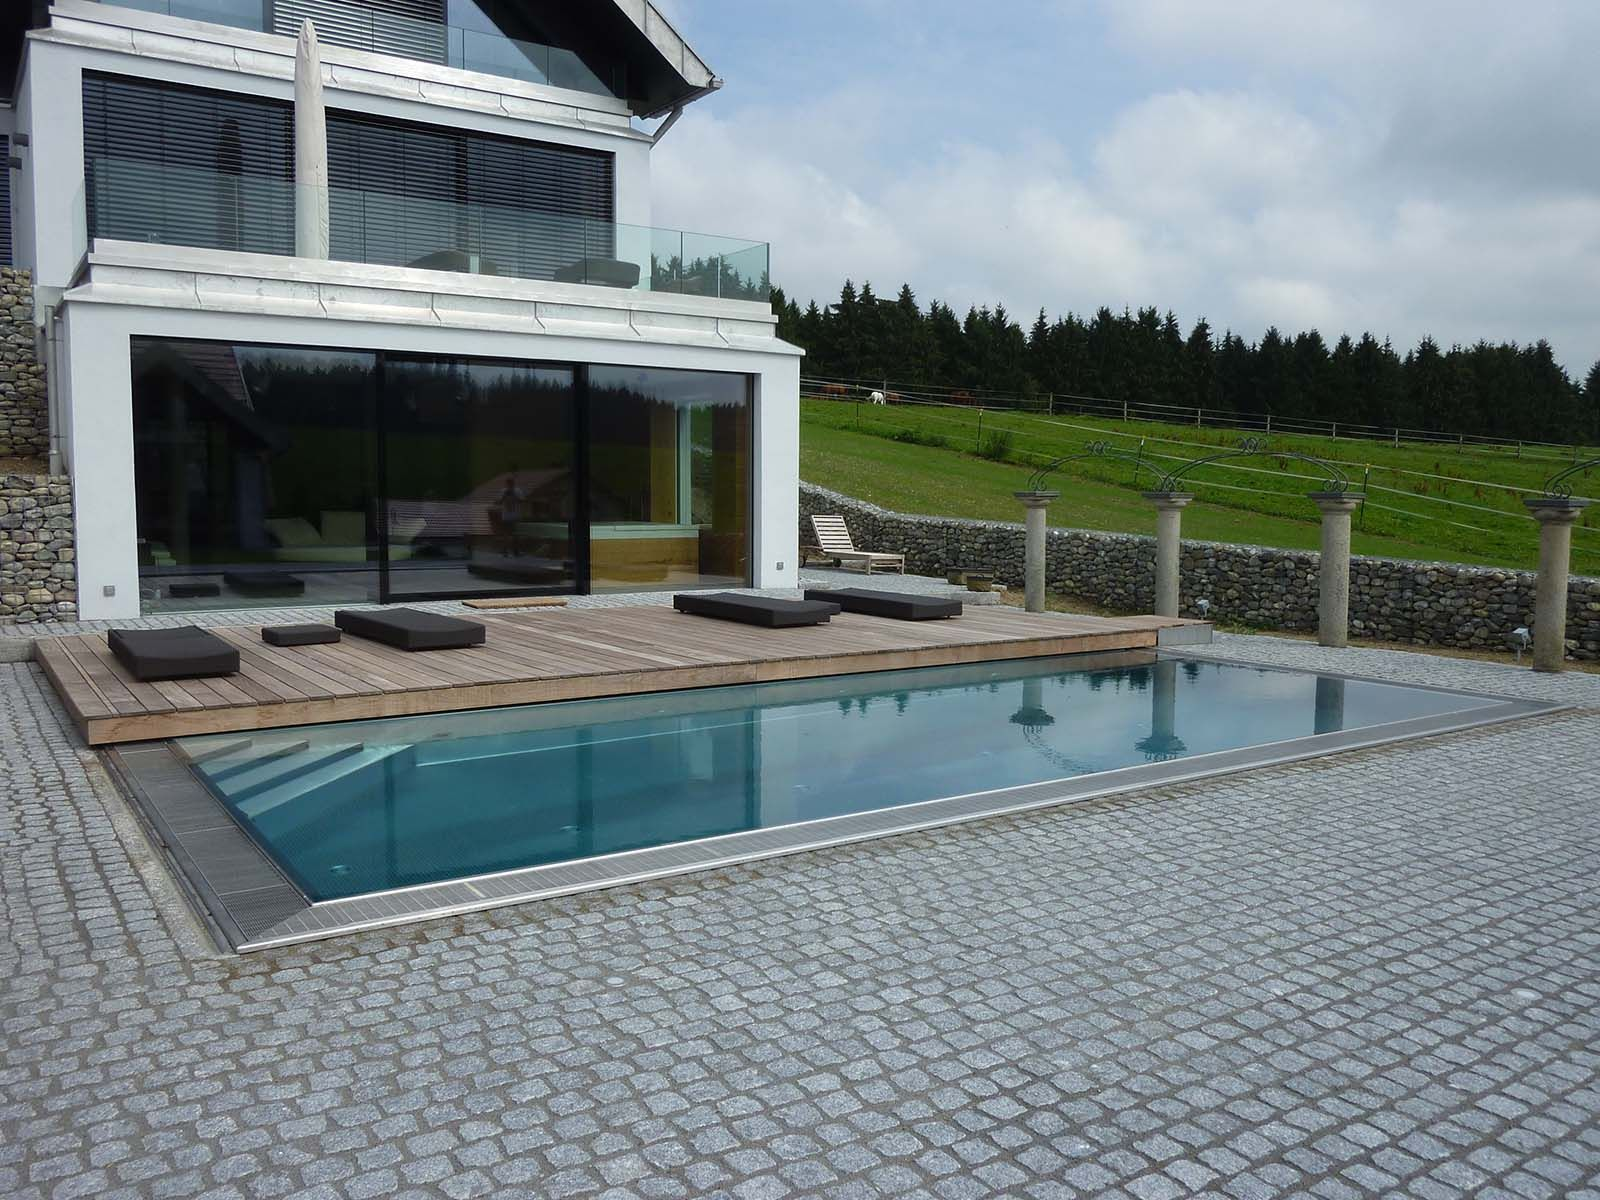 Poolabdeckung Tschechien Pool Solarfolie Winter Blog Referenzen Pool Aus